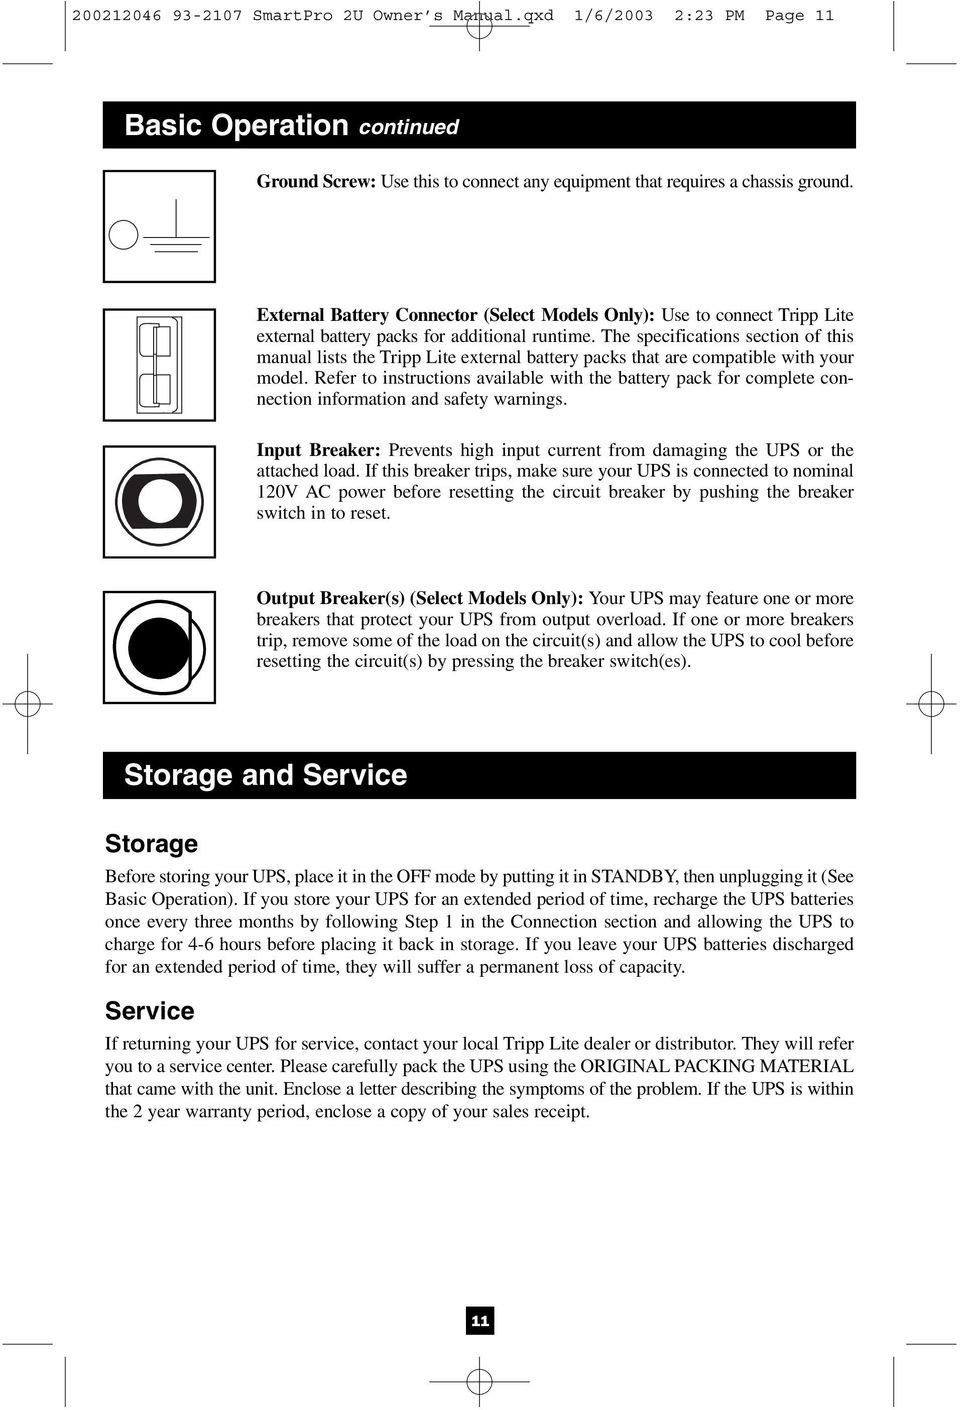 The specifications section of this manual lists the Tripp Lite external battery packs that are compatible with your model.